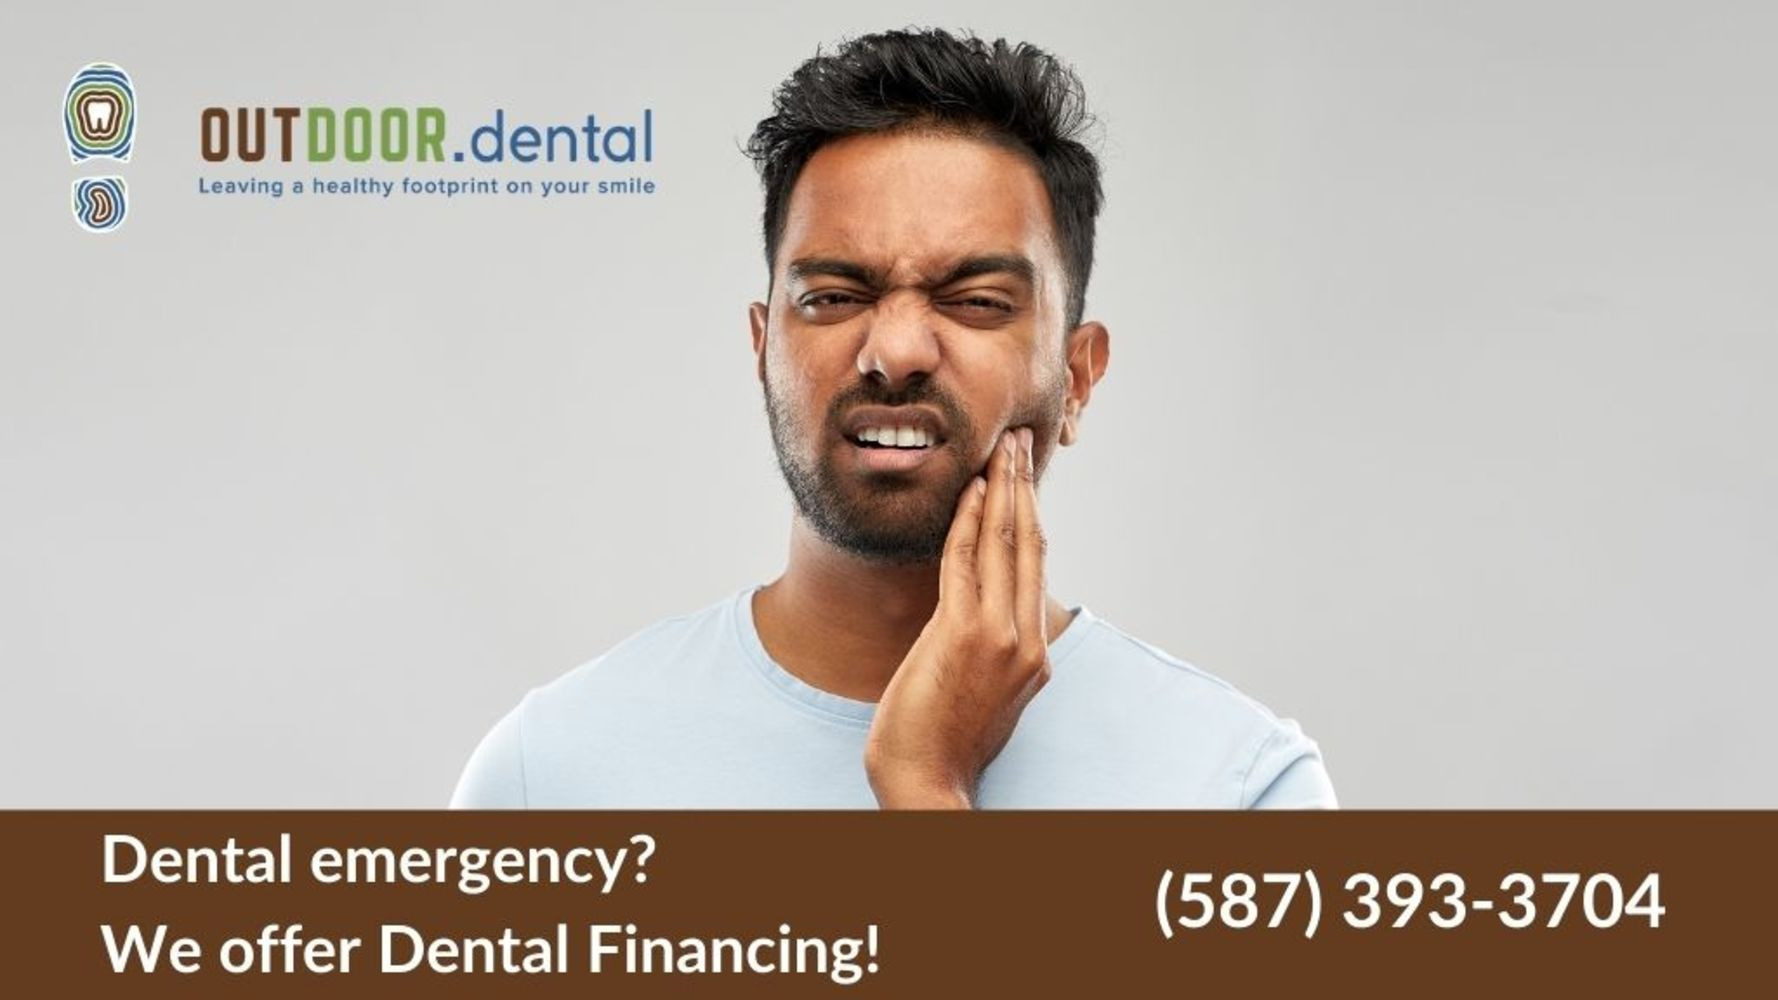 Dental financing for broken tooth, dental implants, root canals, invisalign, tooth pain and more